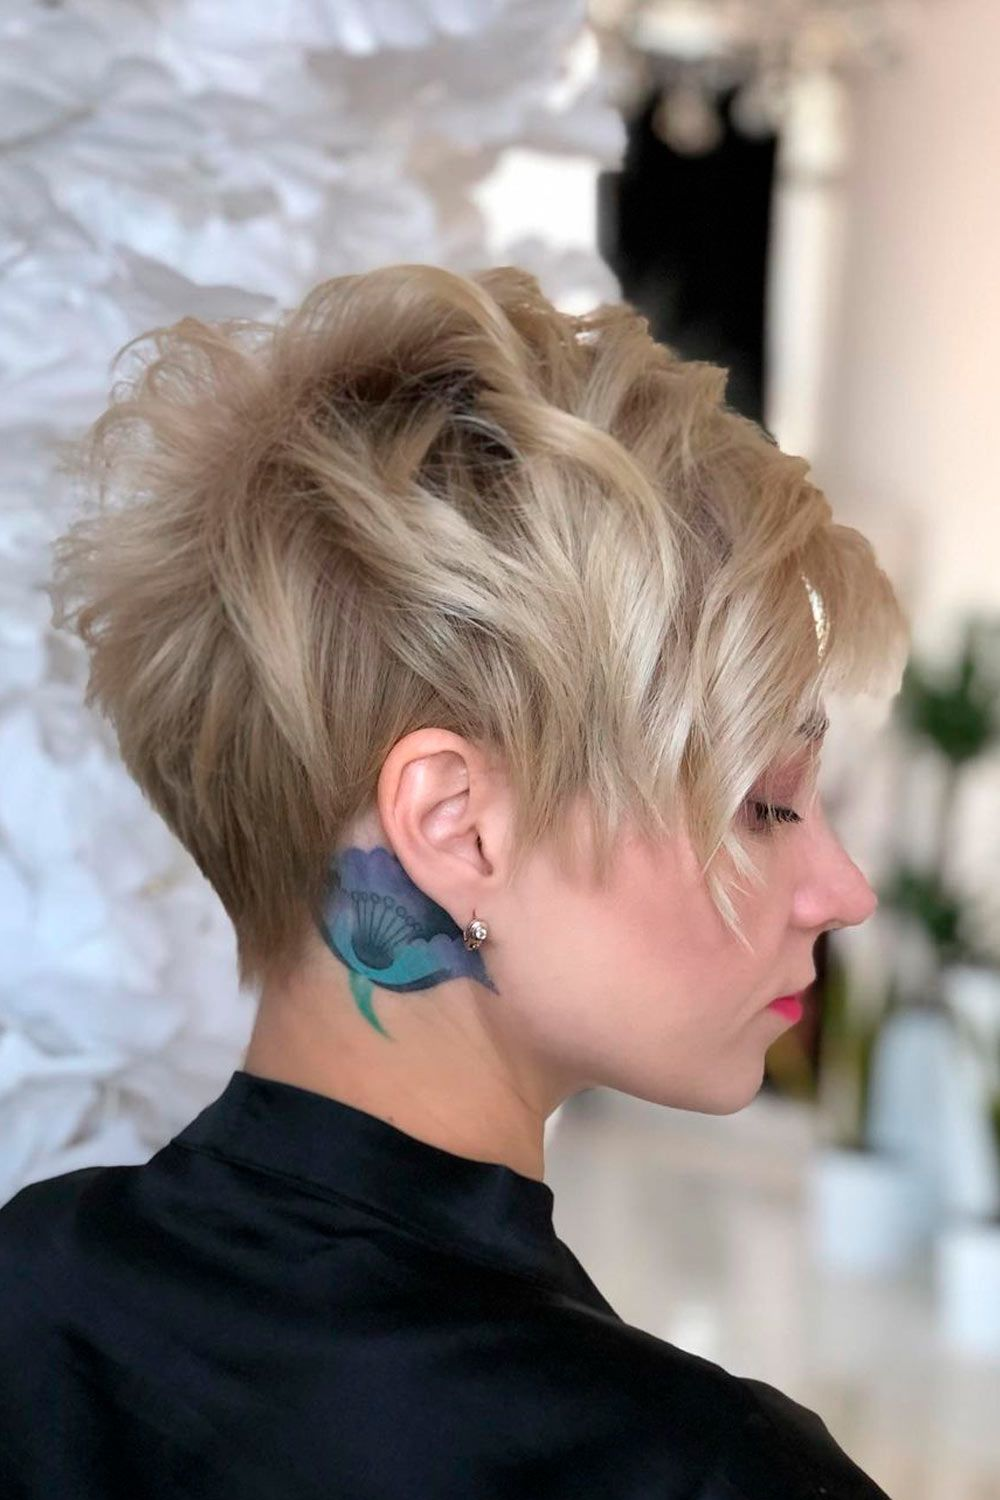 Layered Short Hairstyles, short naturally curly hairstyles for round faces, short afro hairstyles for round faces, short edgy hairstyles for women with round faces